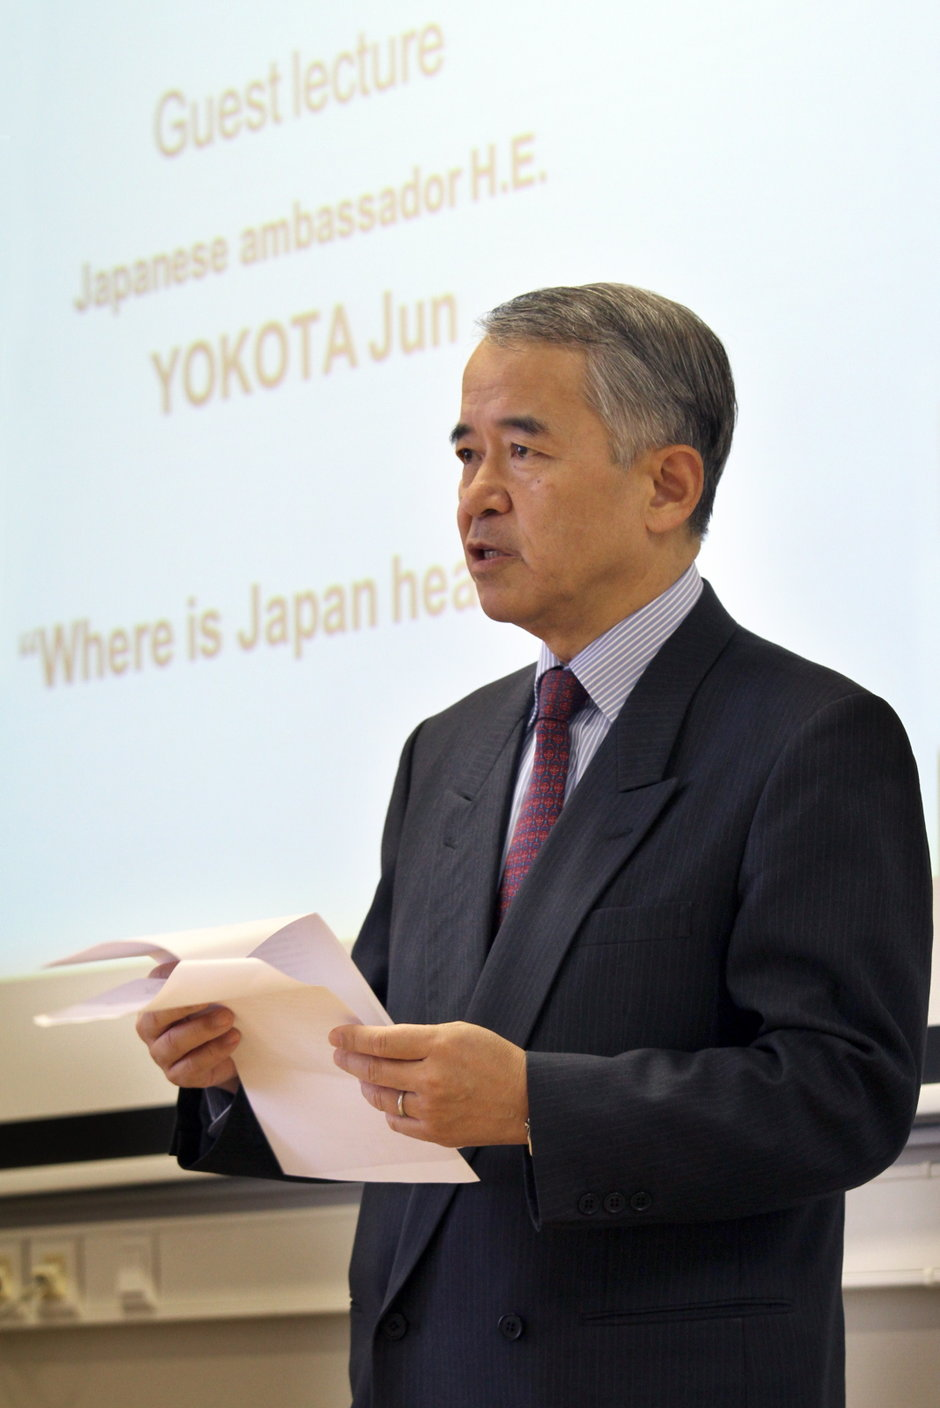 Lezing door de Japanse ambassadeur in België Yokota Jun: 'Where is Japan headed?'